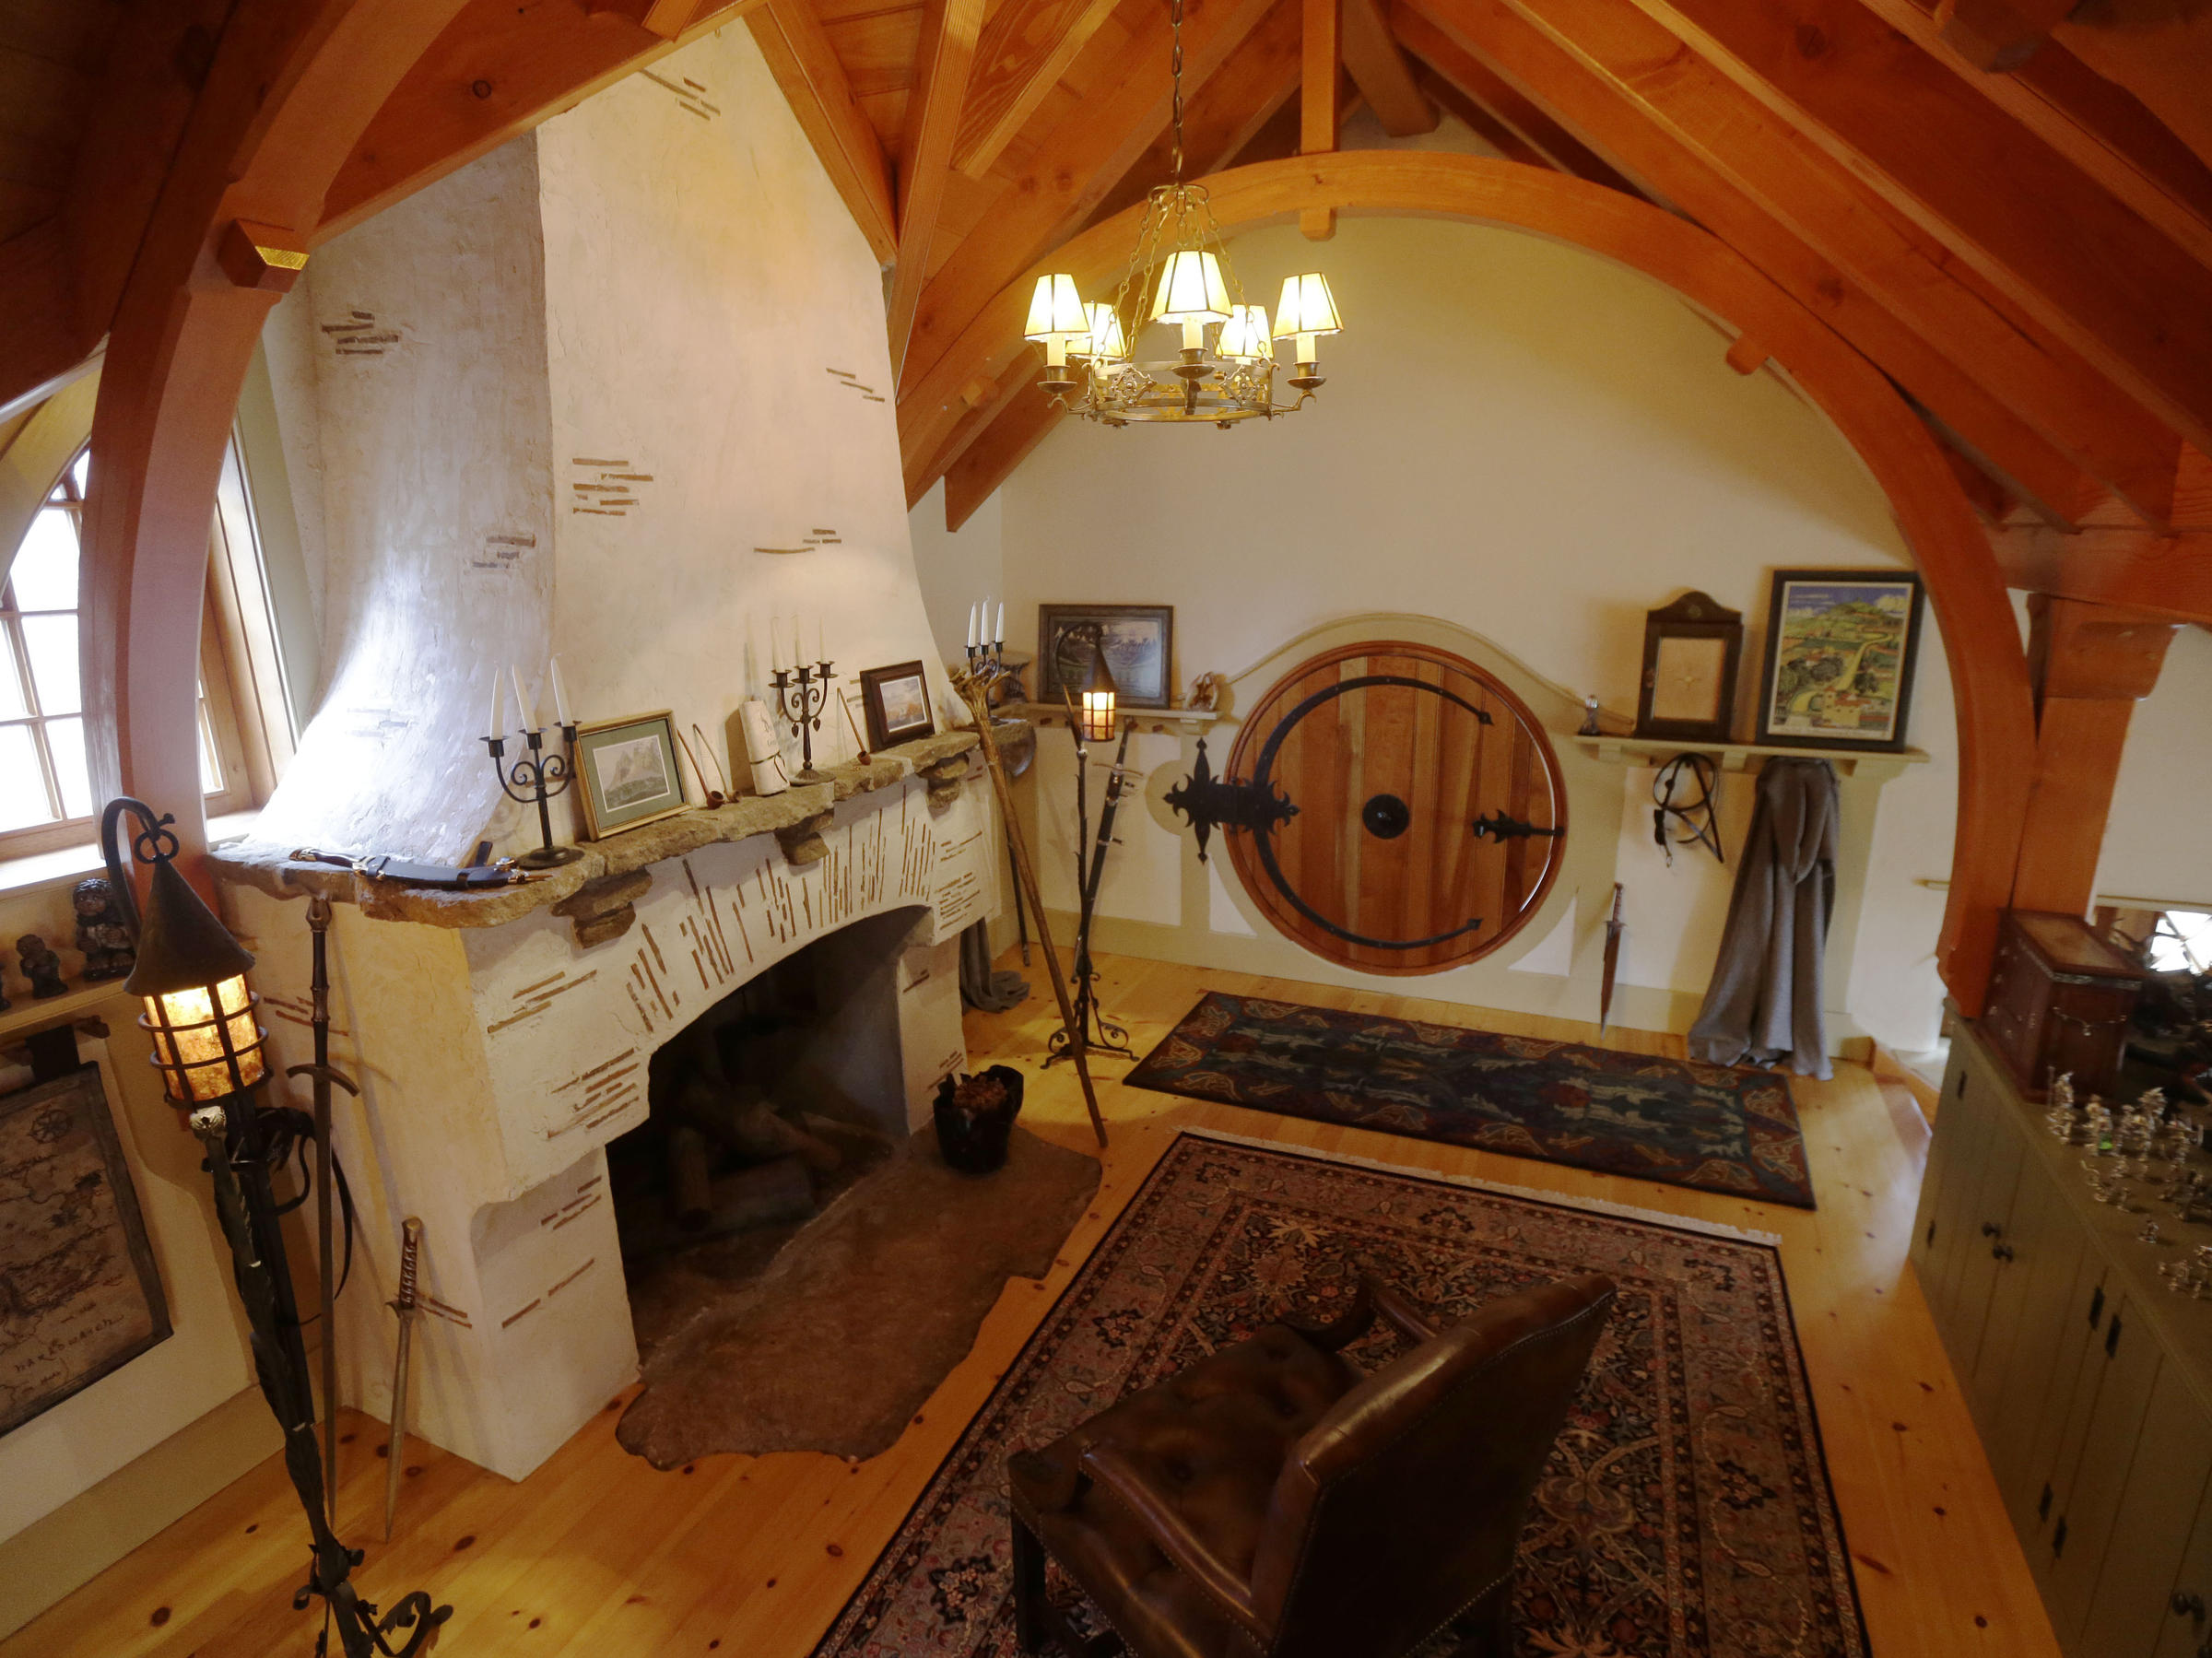 How To Build A Hobbit House No Orcs Allowed Hobbit House Brings Middle Earth To Pa Boise